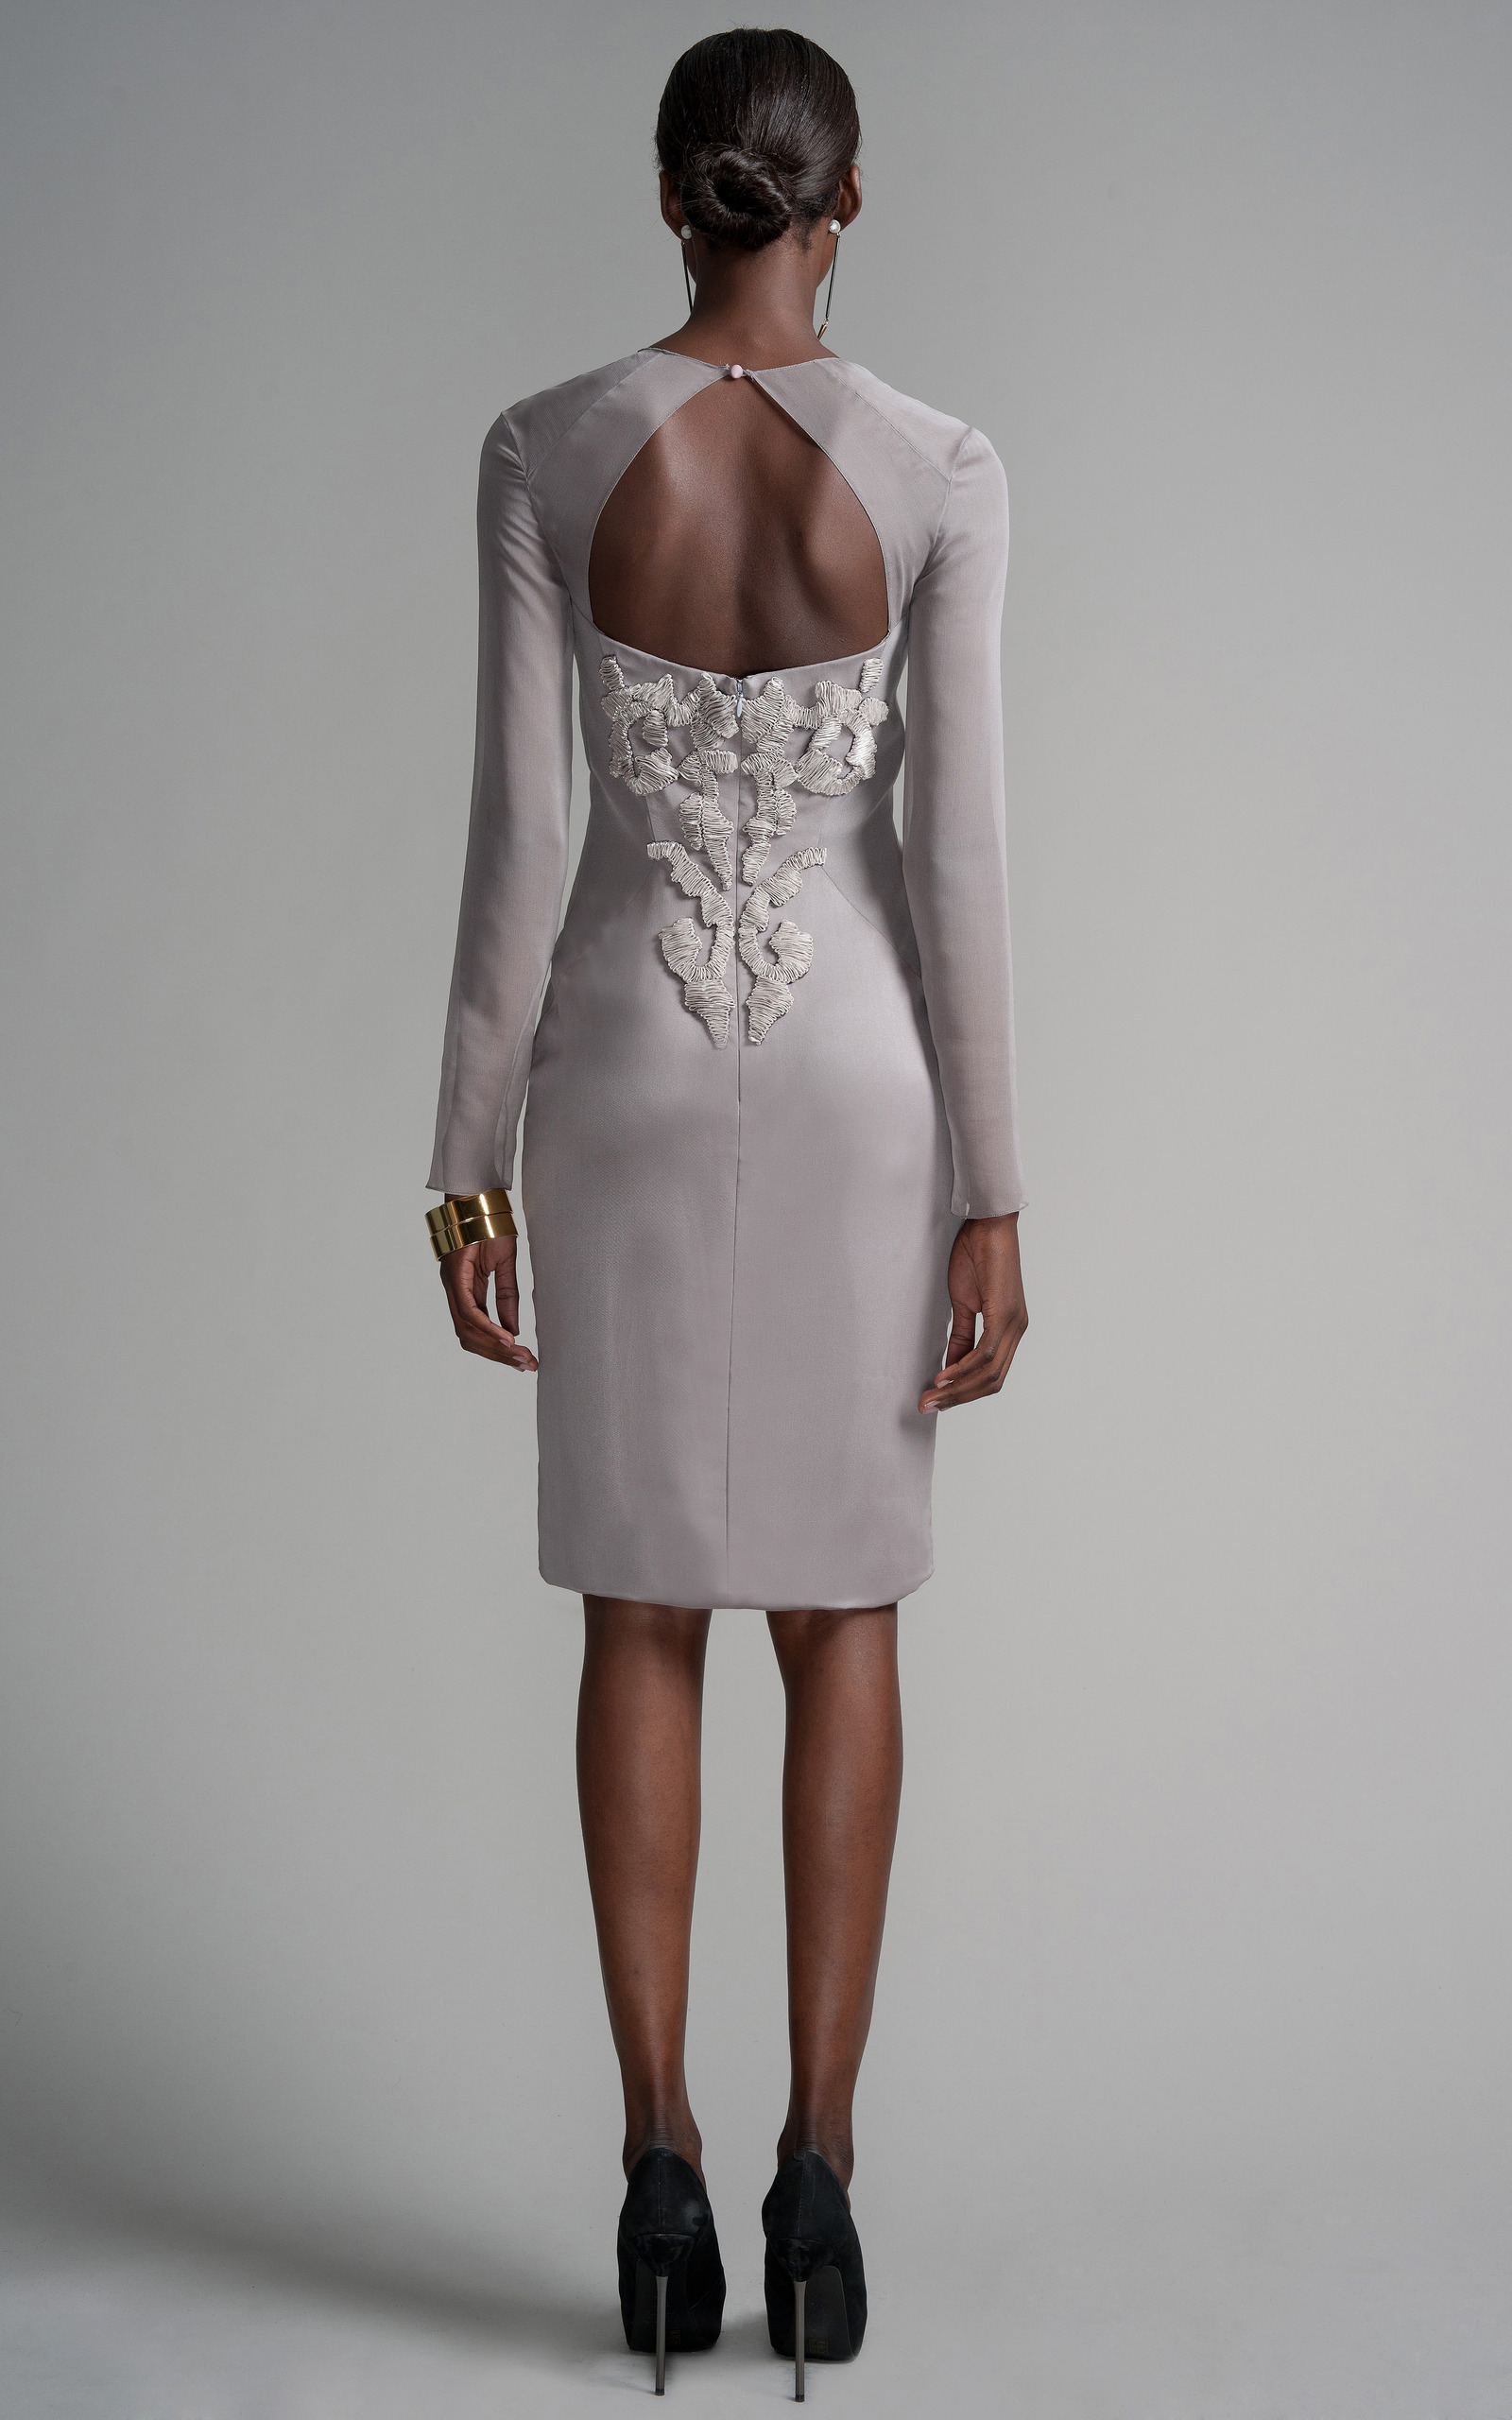 83daa1c40ee Ribbon Embroidery Cocktail Dress by Bibhu Mohapatra